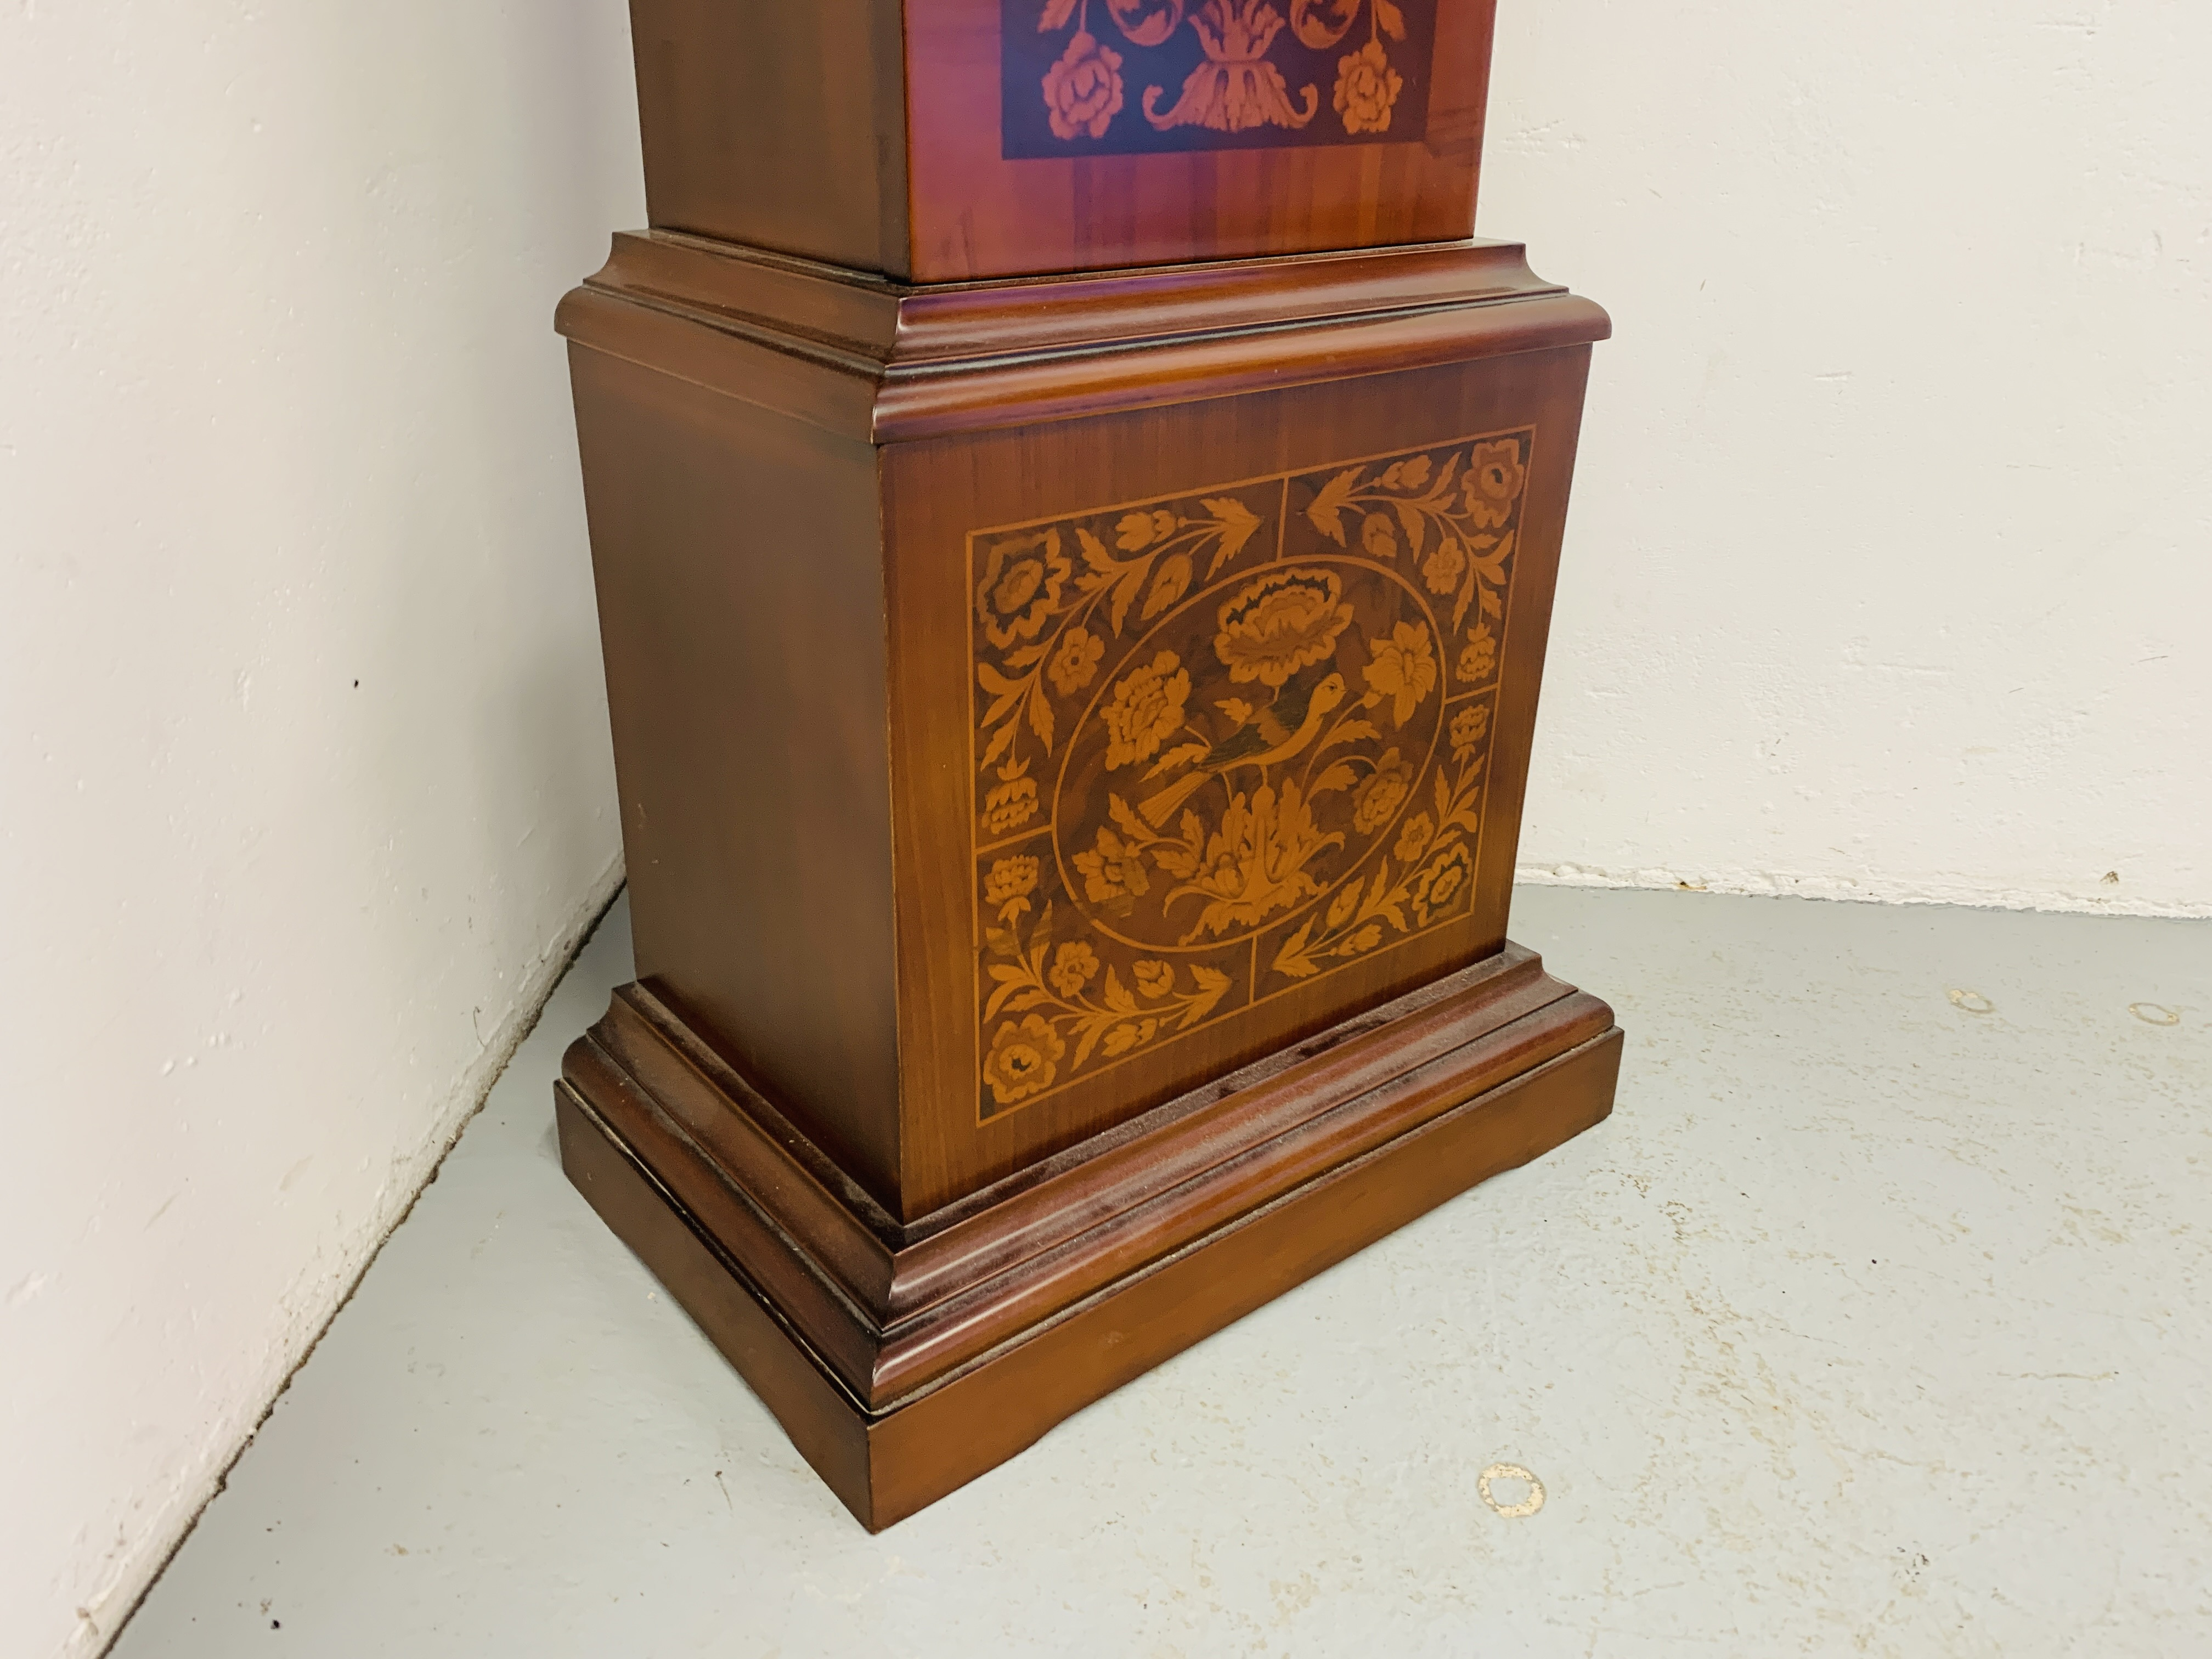 A GOOD QUALITY REPRODUCTION LONG CASE CLOCK - WESTMINSTER CHIME - SOLD AS SEEN - Image 7 of 19